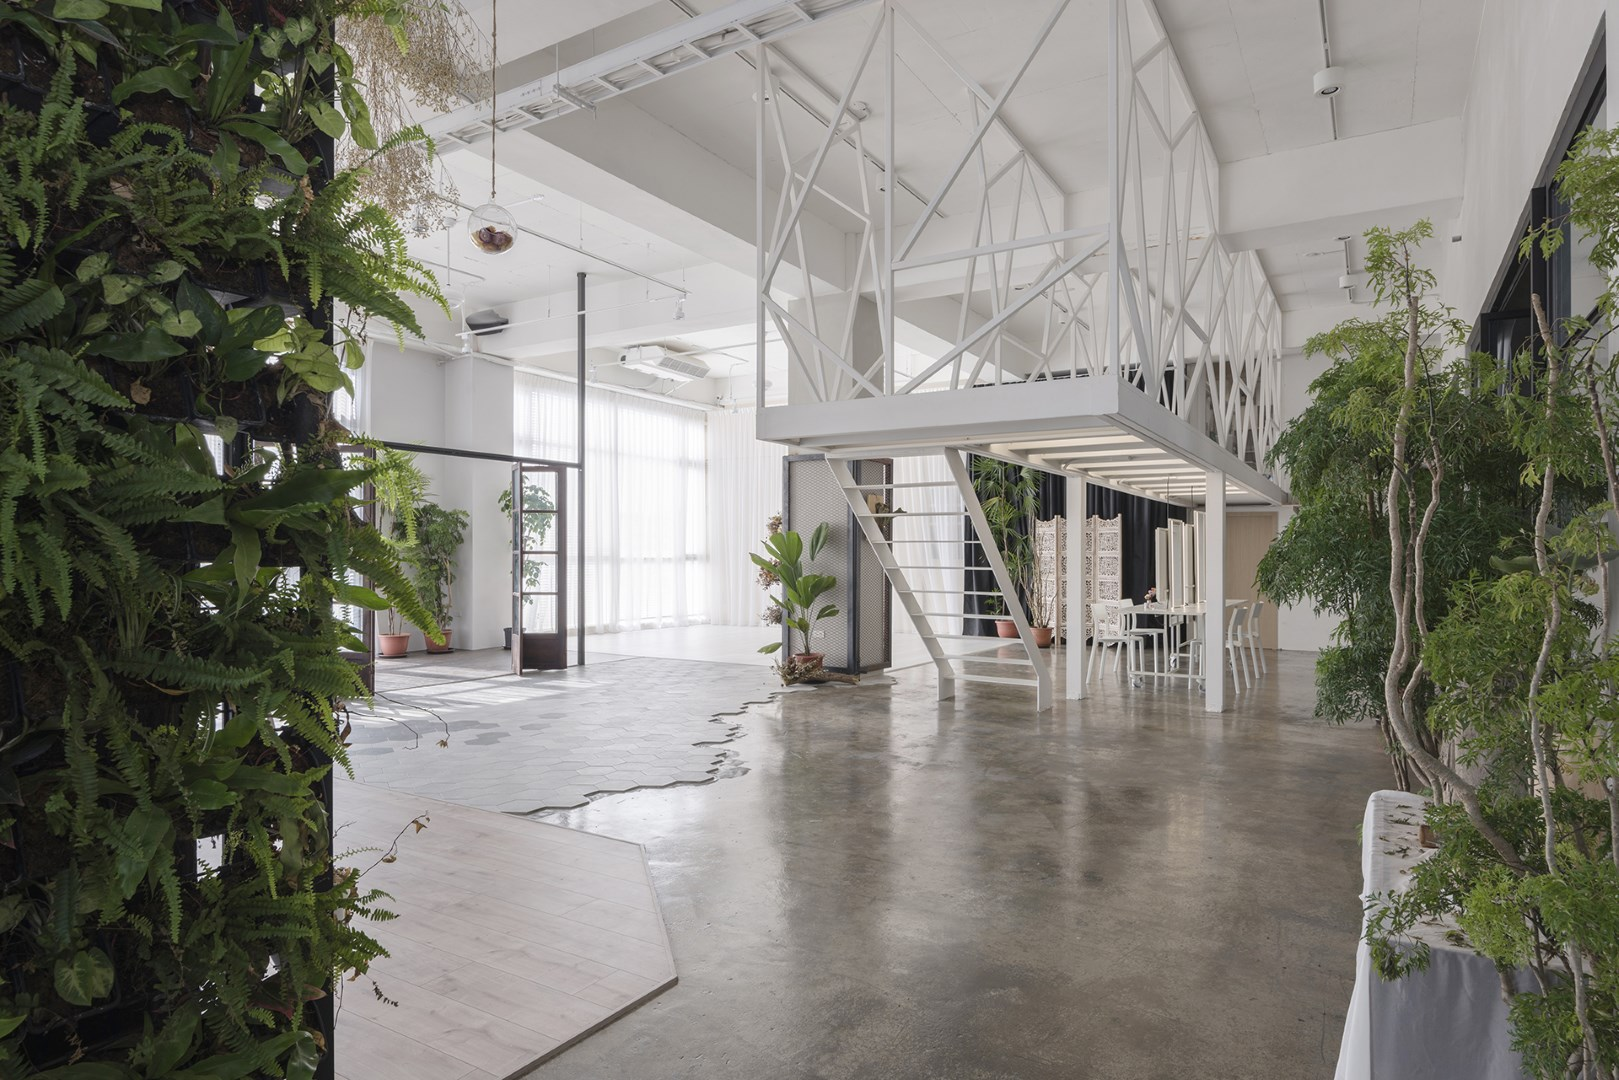 Mu Mu Photography Studio Han Yue Interior Design Co Ltd The Architects Diary